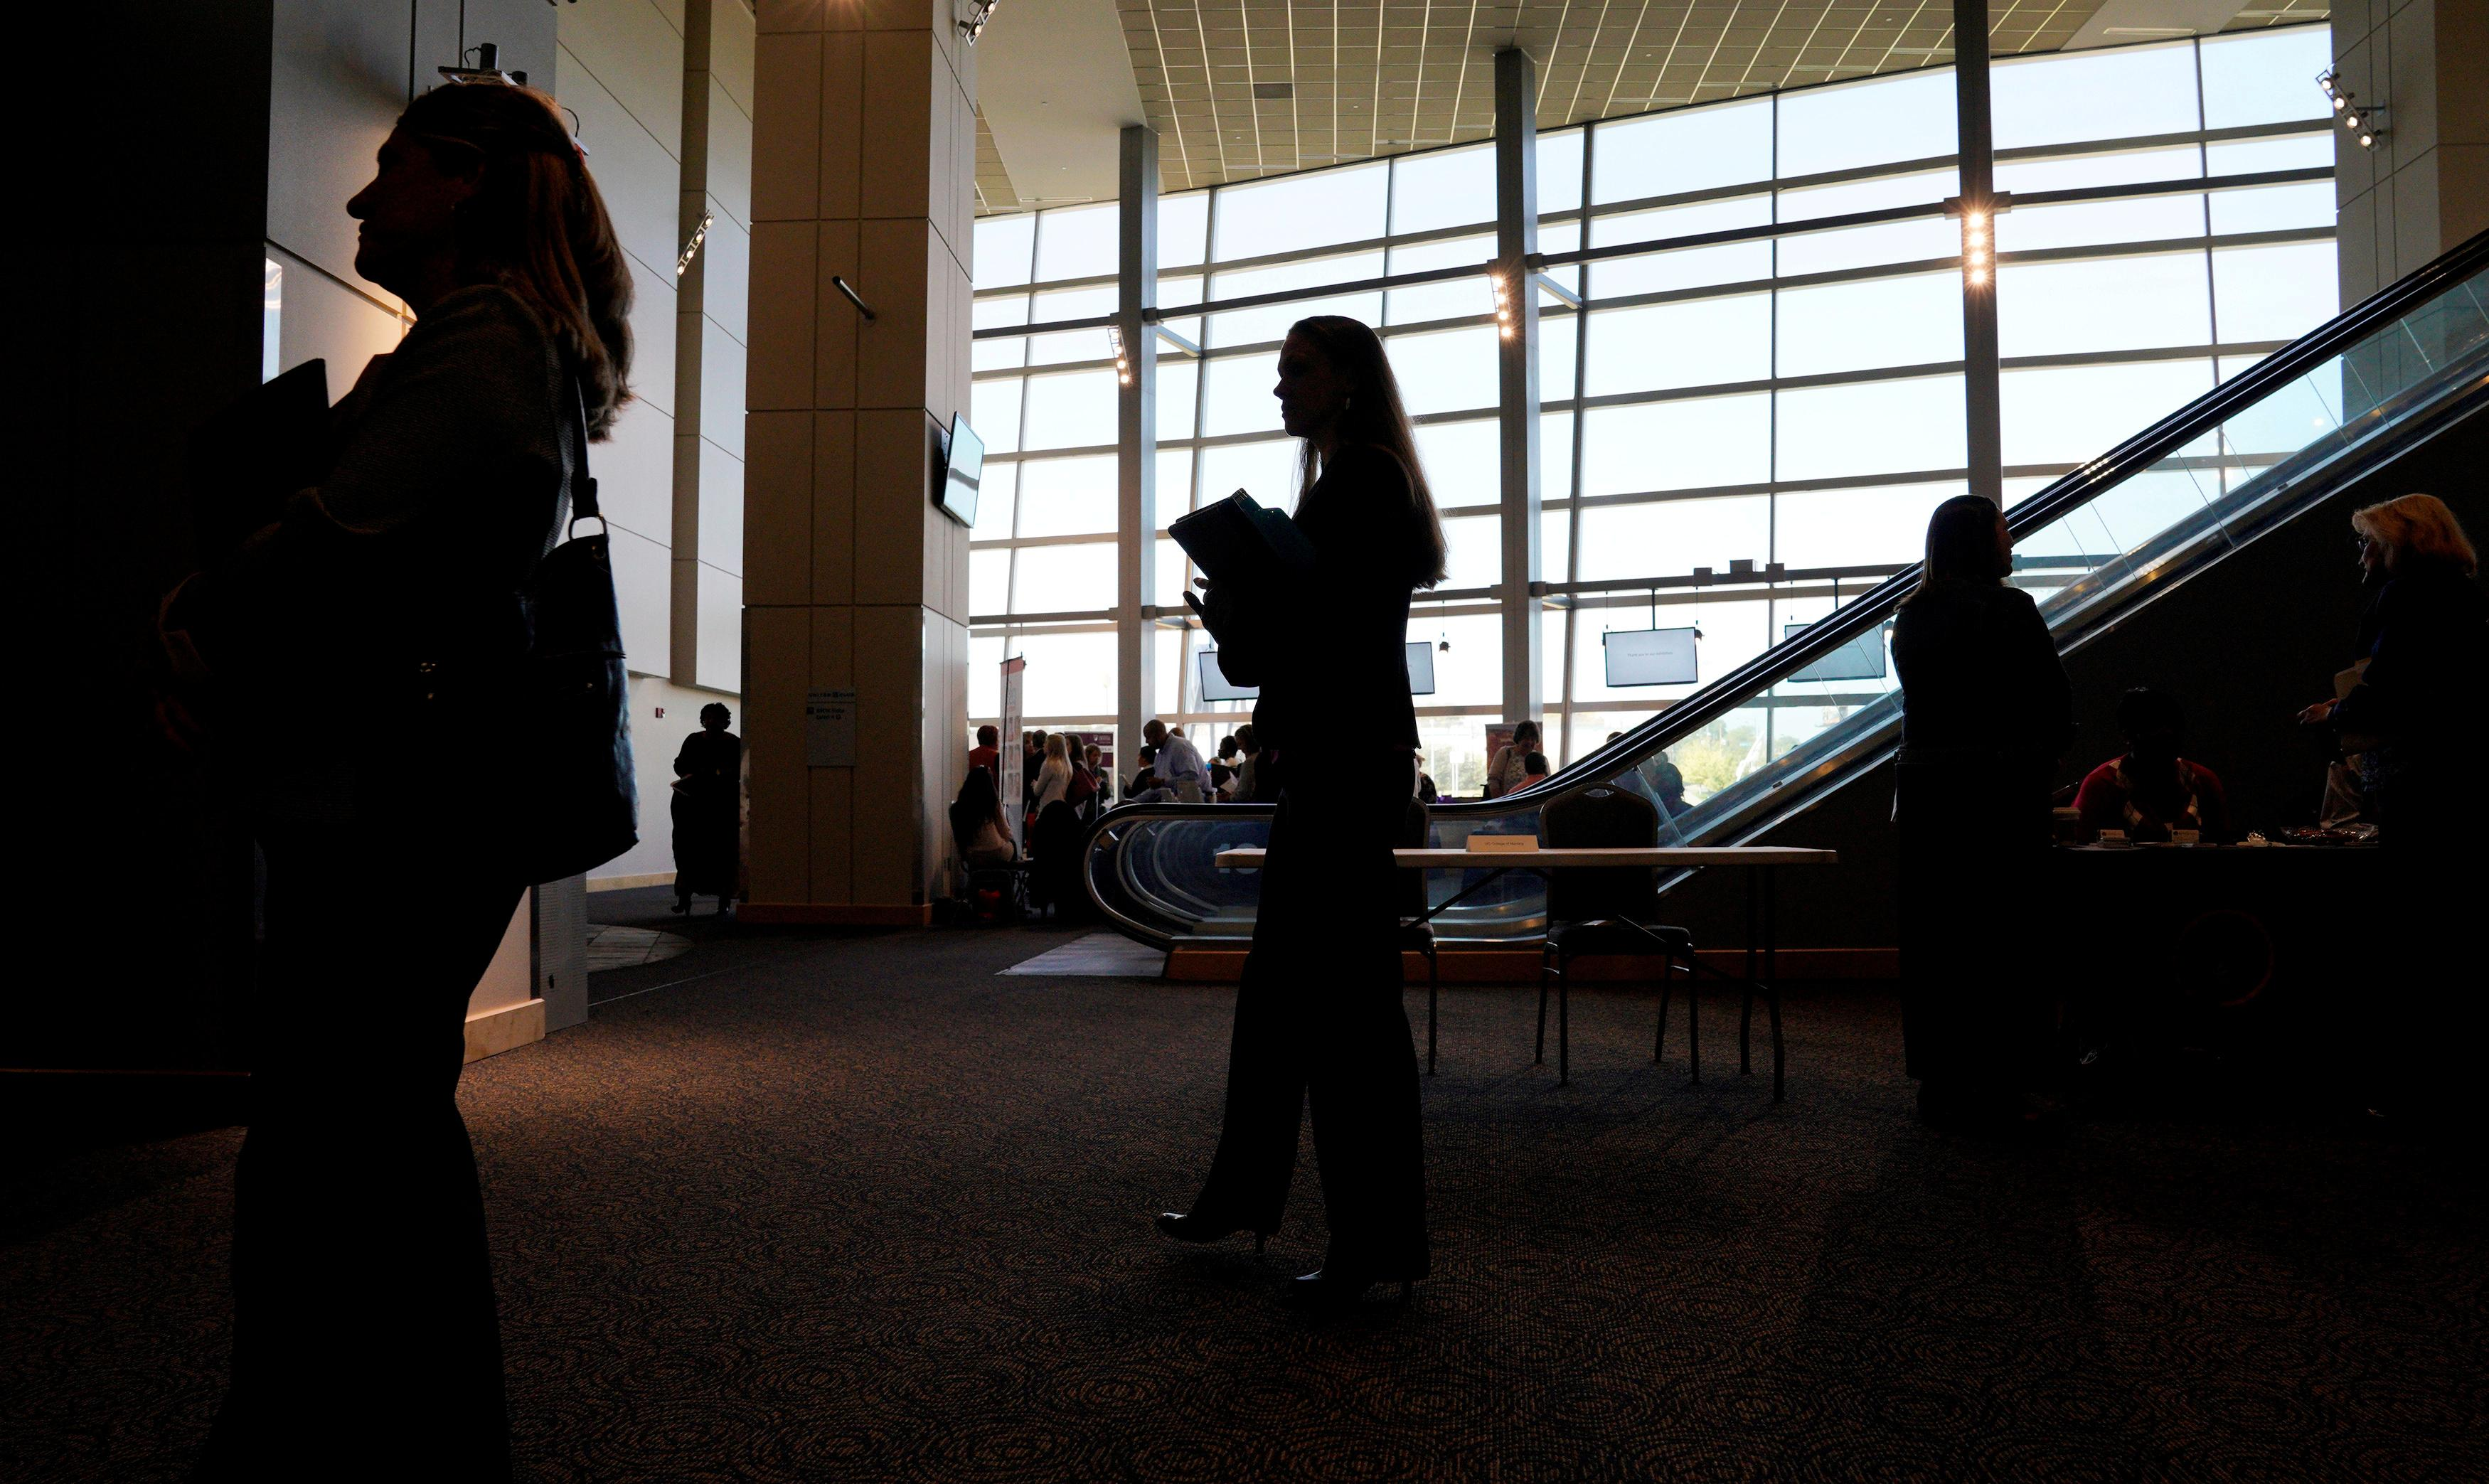 U.S. jobless claims fall in sign of labor market strength